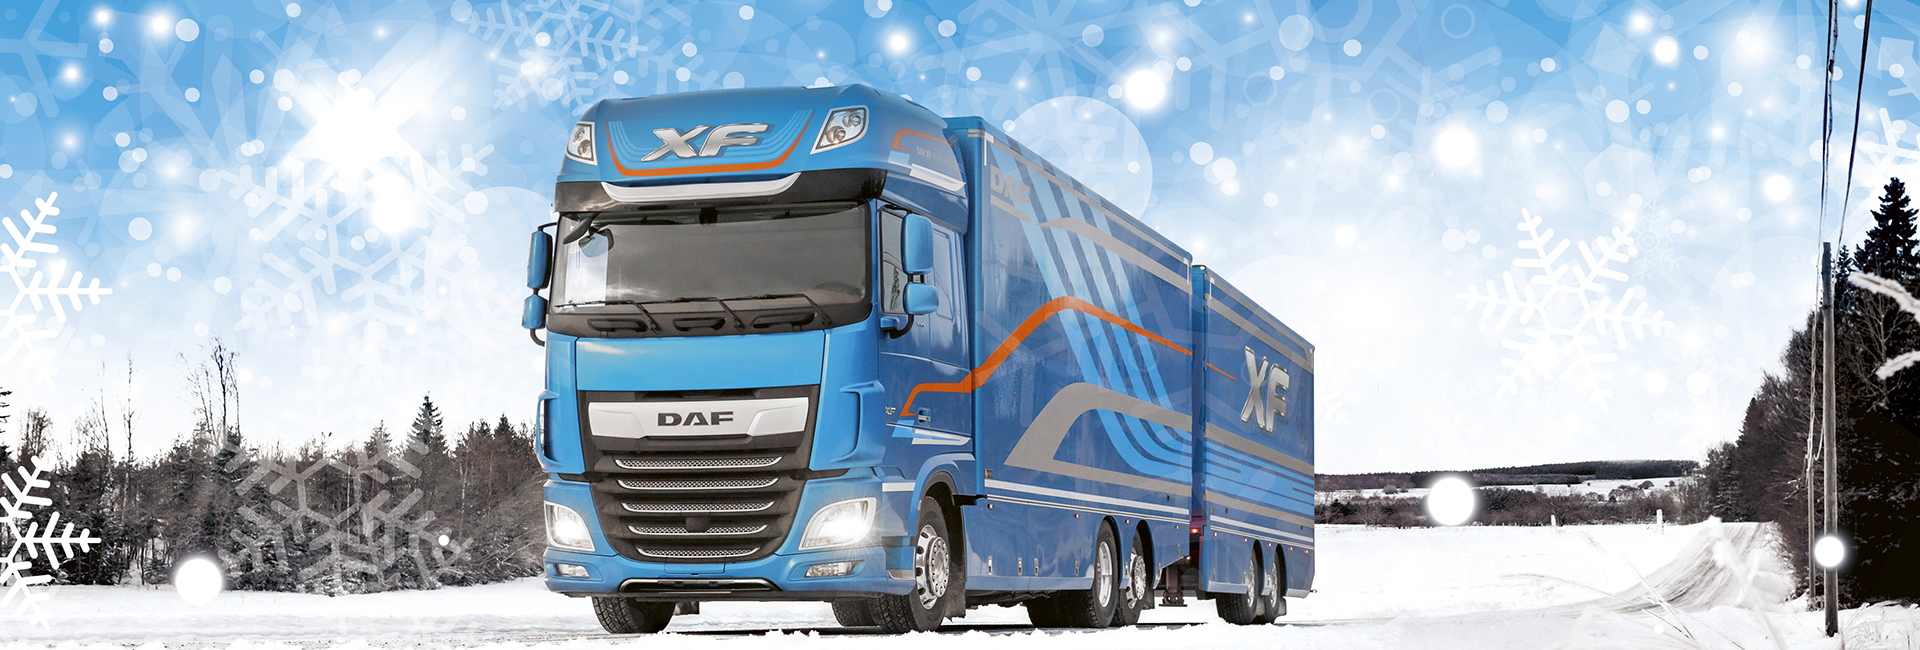 Seasons-greetings-DAF-2019